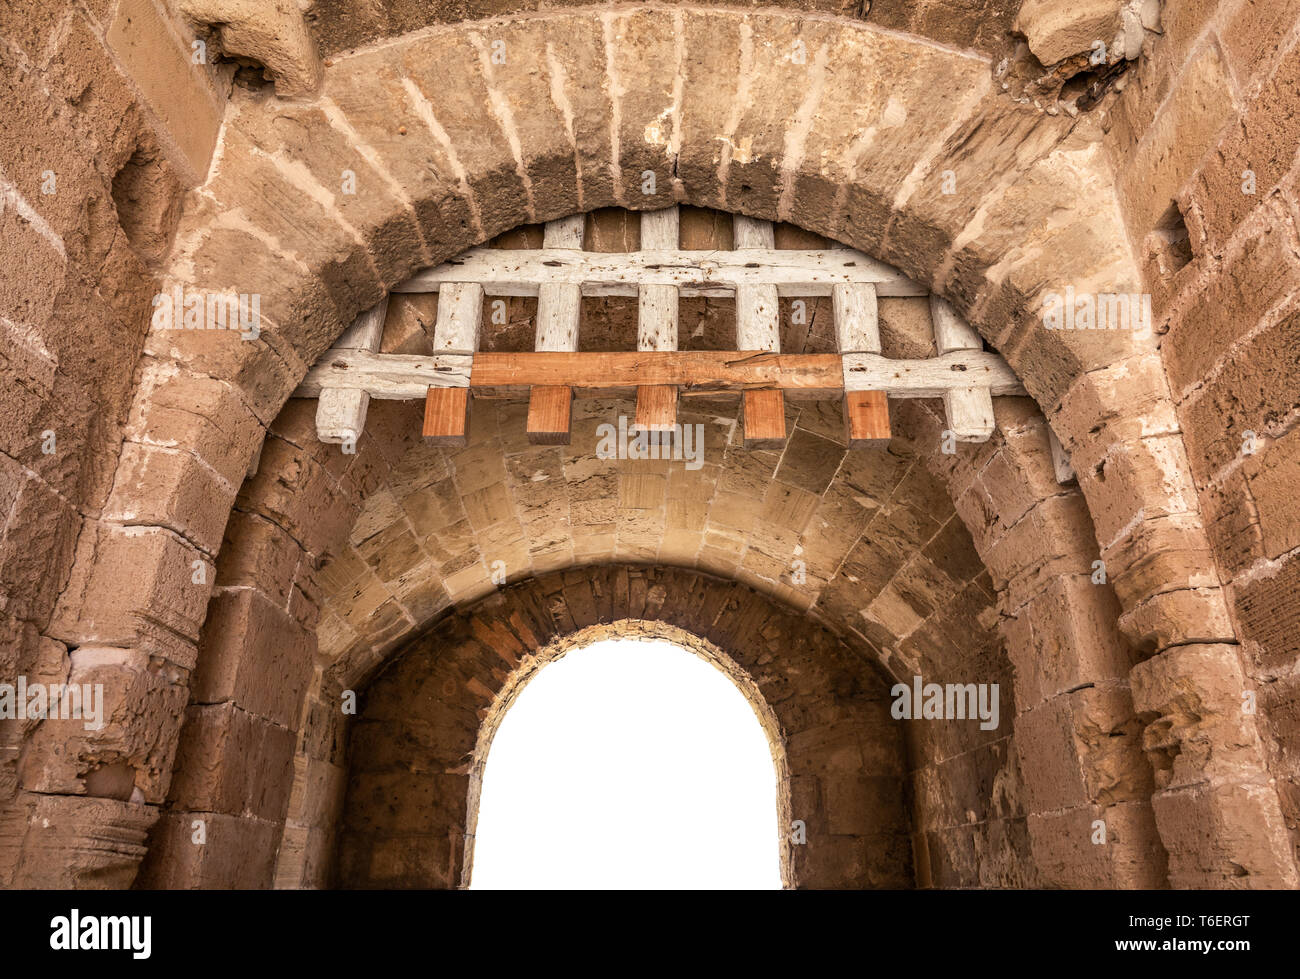 Isolated Fortress Archway With Portcullis - Stock Image